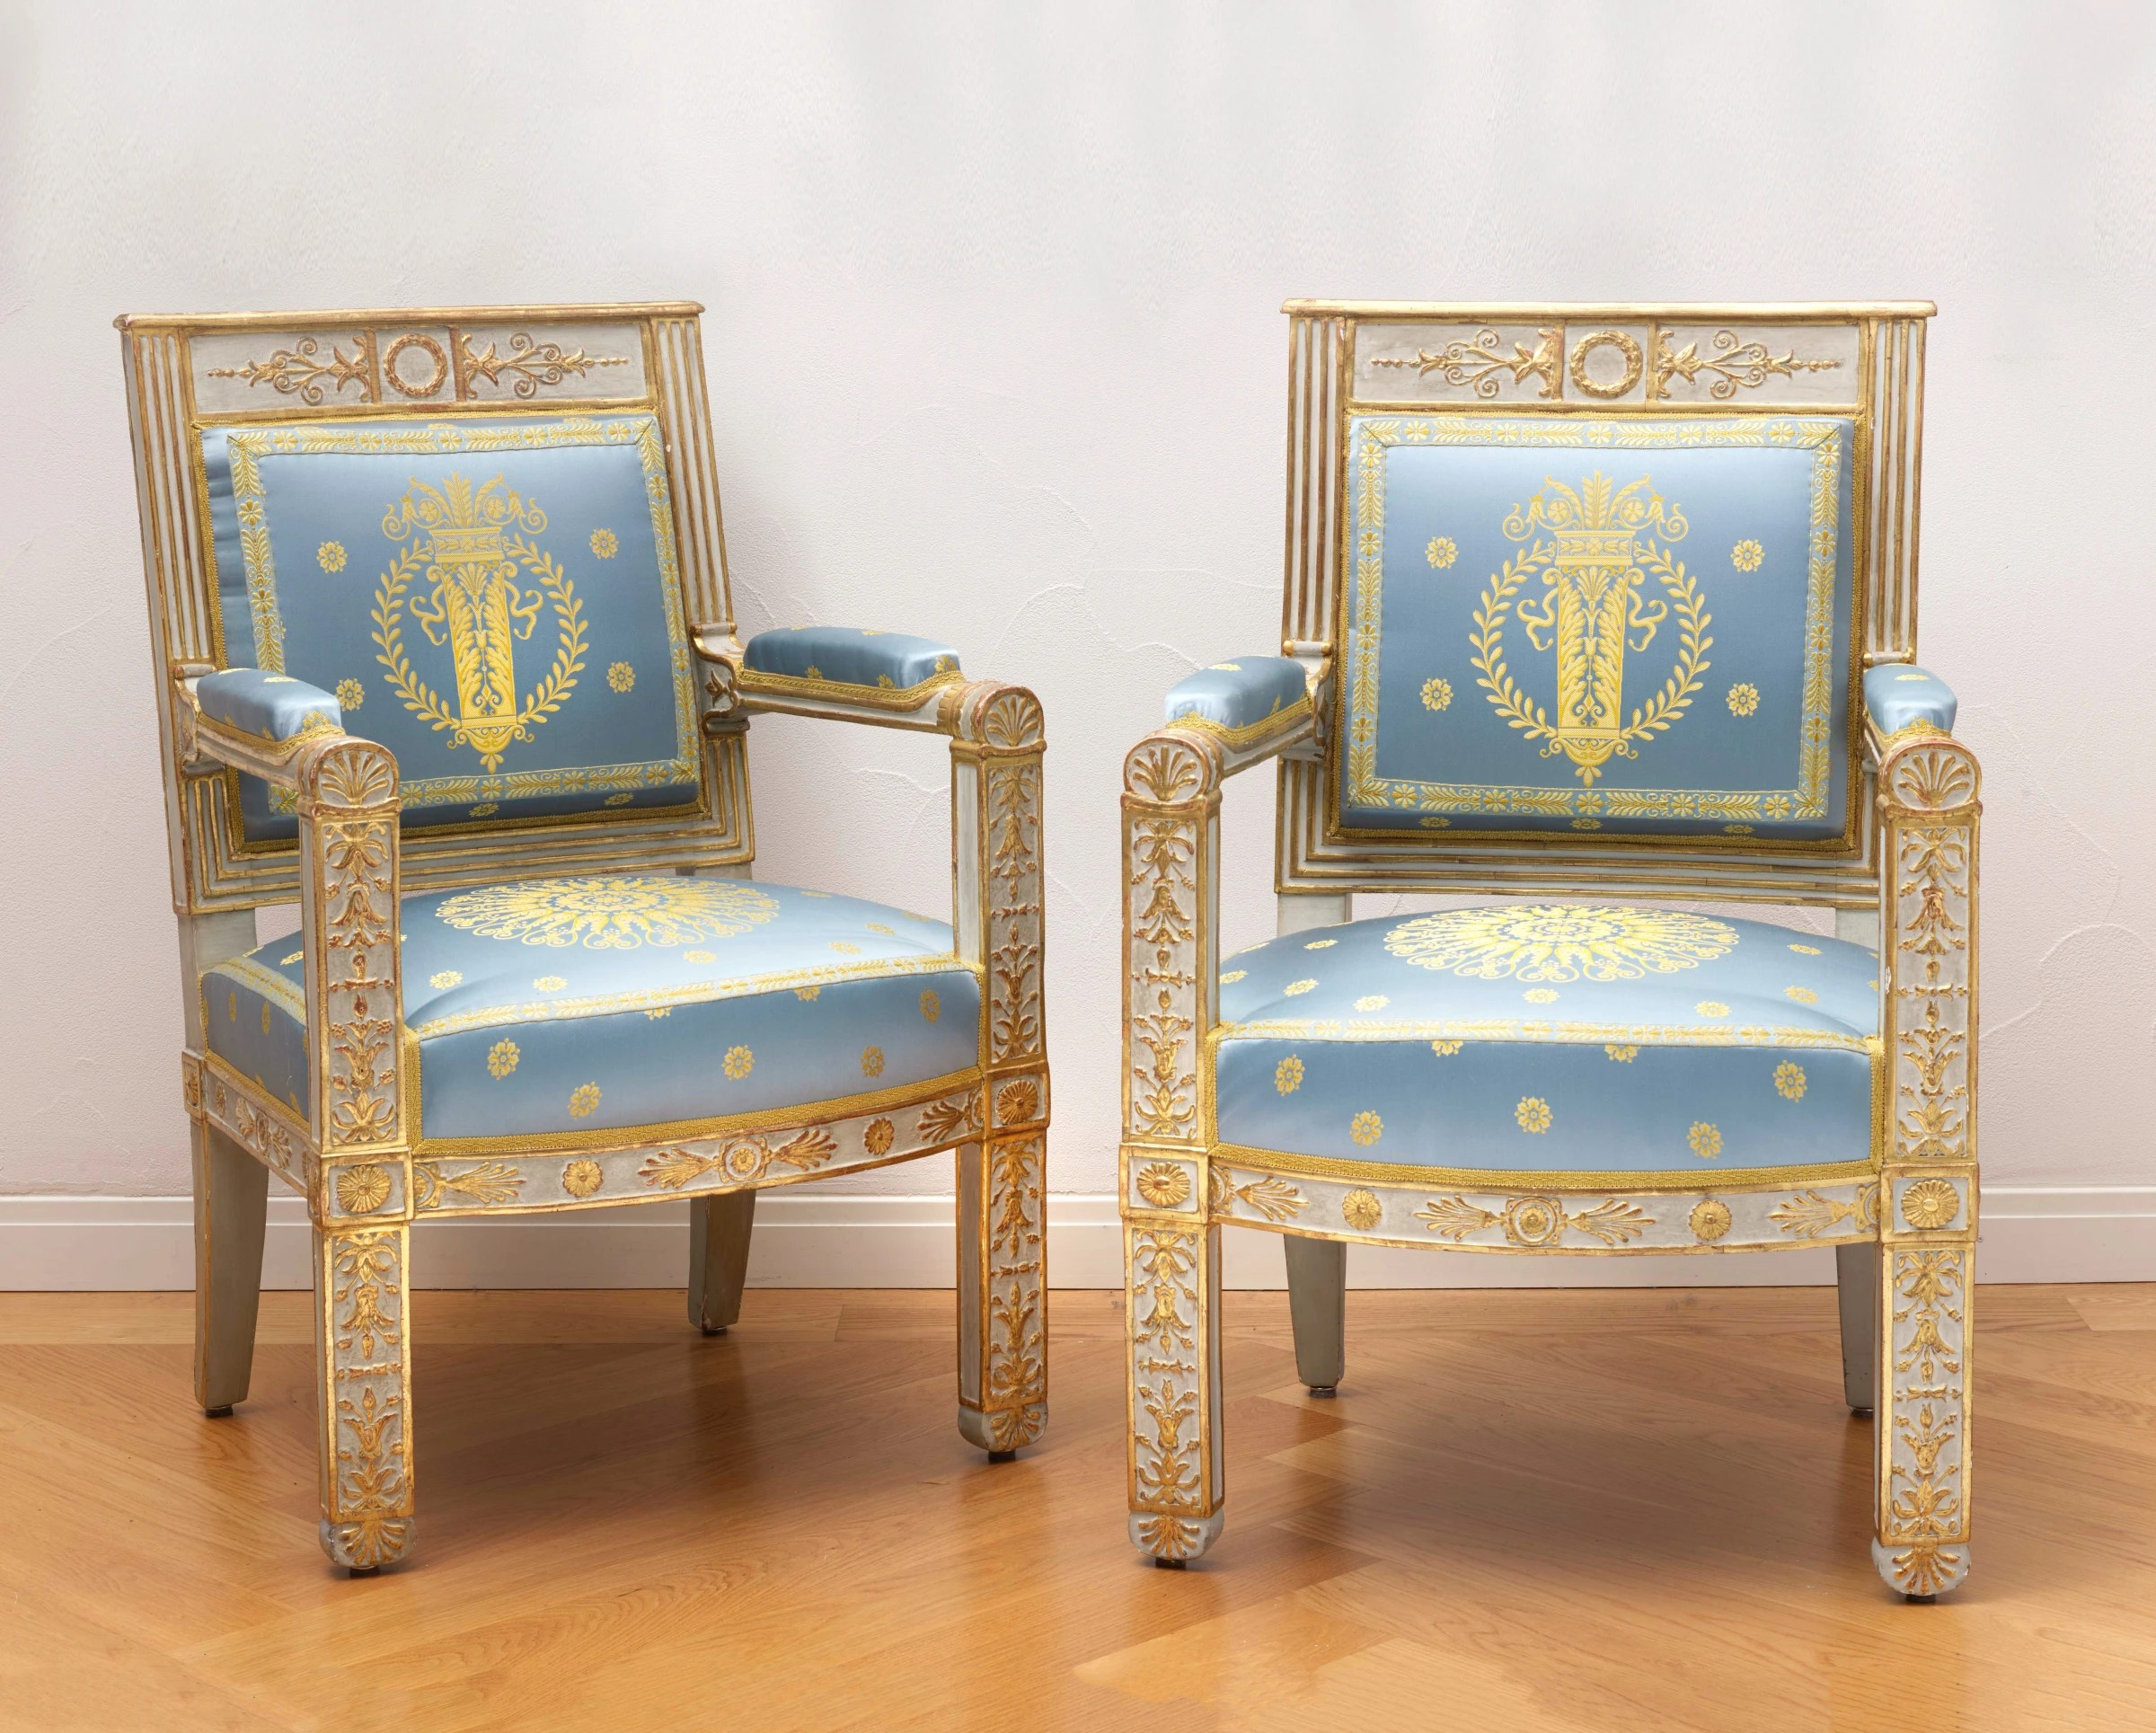 Pierre Gaston Brion Attributed To A Set Of Empire Furniture Comprising A Canapé Two Fauteuils And Two Side Chairs Attributed To Pierre Gaston Brion Paris Date Circa 1809 Richard Redding Antiques Ltd